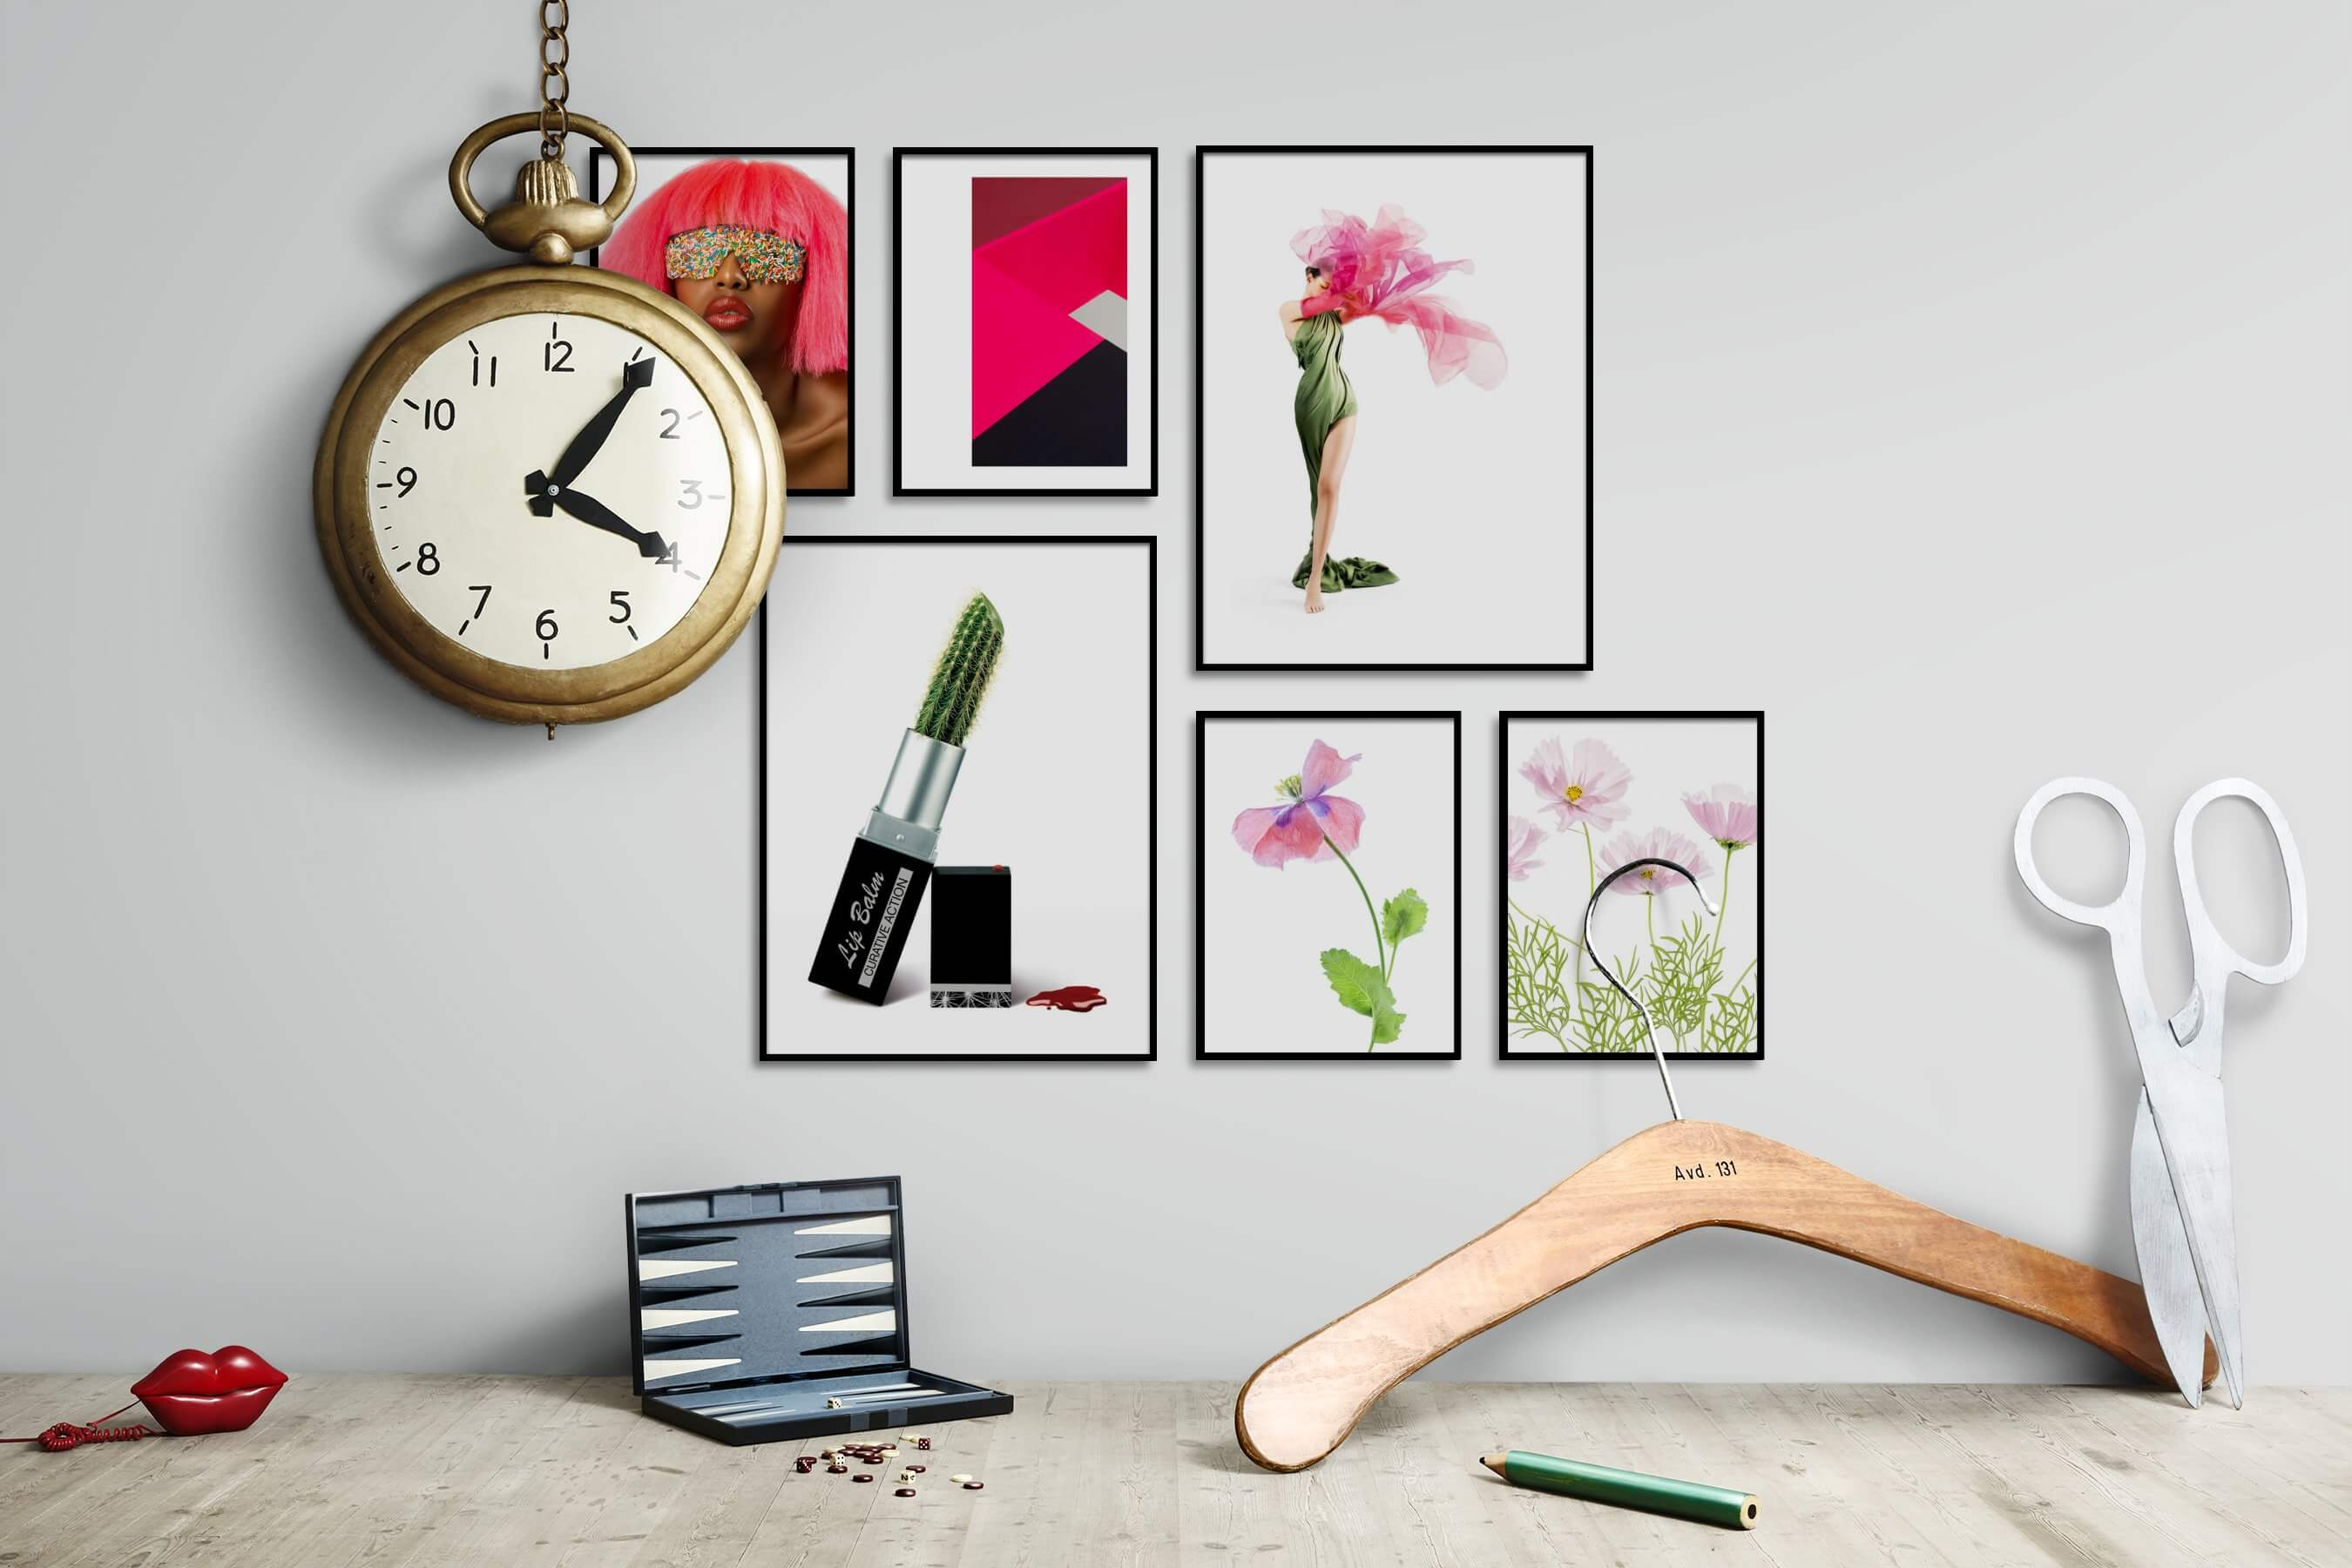 Gallery wall idea with six framed pictures arranged on a wall depicting Fashion & Beauty, Vintage, Colorful, For the Minimalist, Bright Tones, Flowers & Plants, and For the Moderate